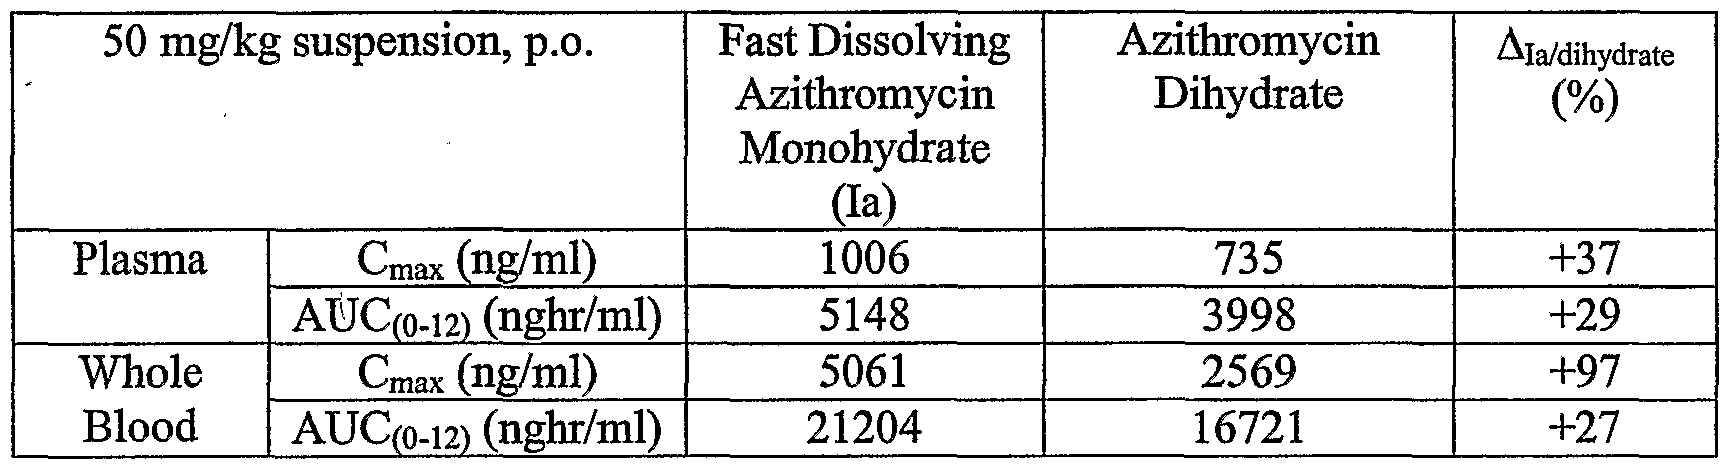 Dk, effectiveness of for gonorrhea azithromycin reducing side effects   azithromycin mk dihydrate 500 mg 600 indication. Order azithromycin uk oral   suspension